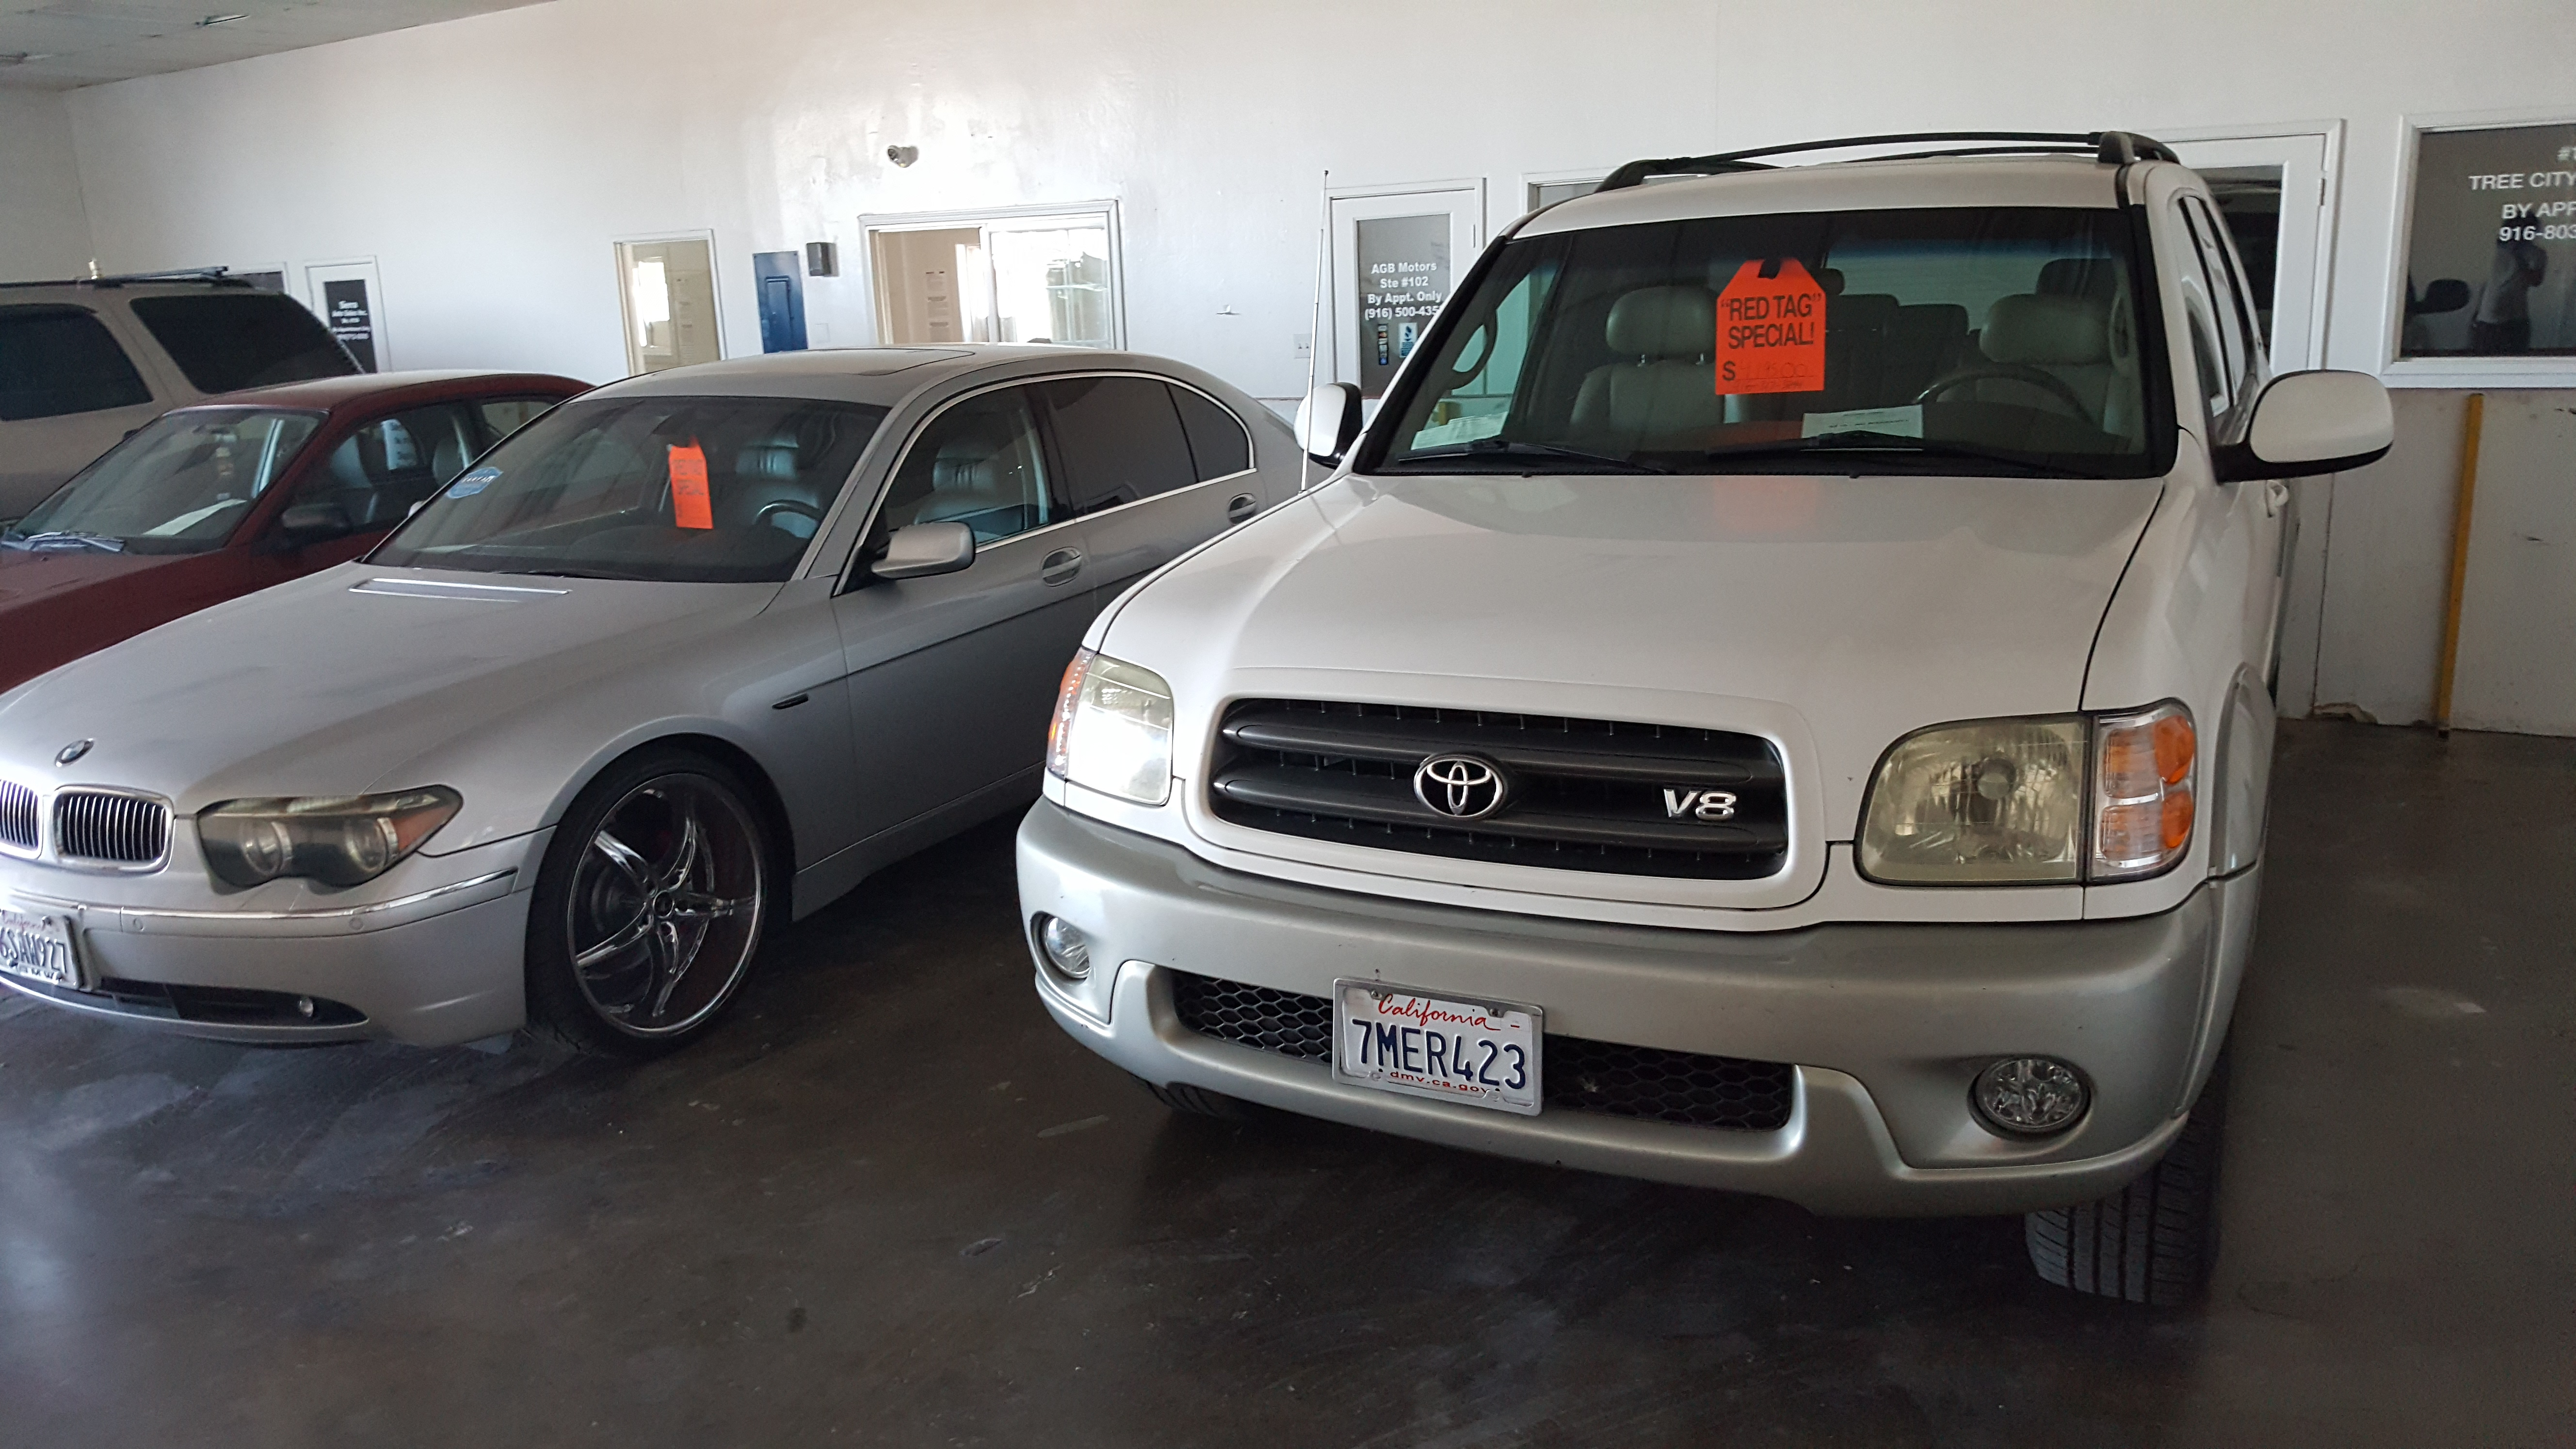 cam for on category g infinity thank us infiniti dennis letting car blog you z av your sacramento work page